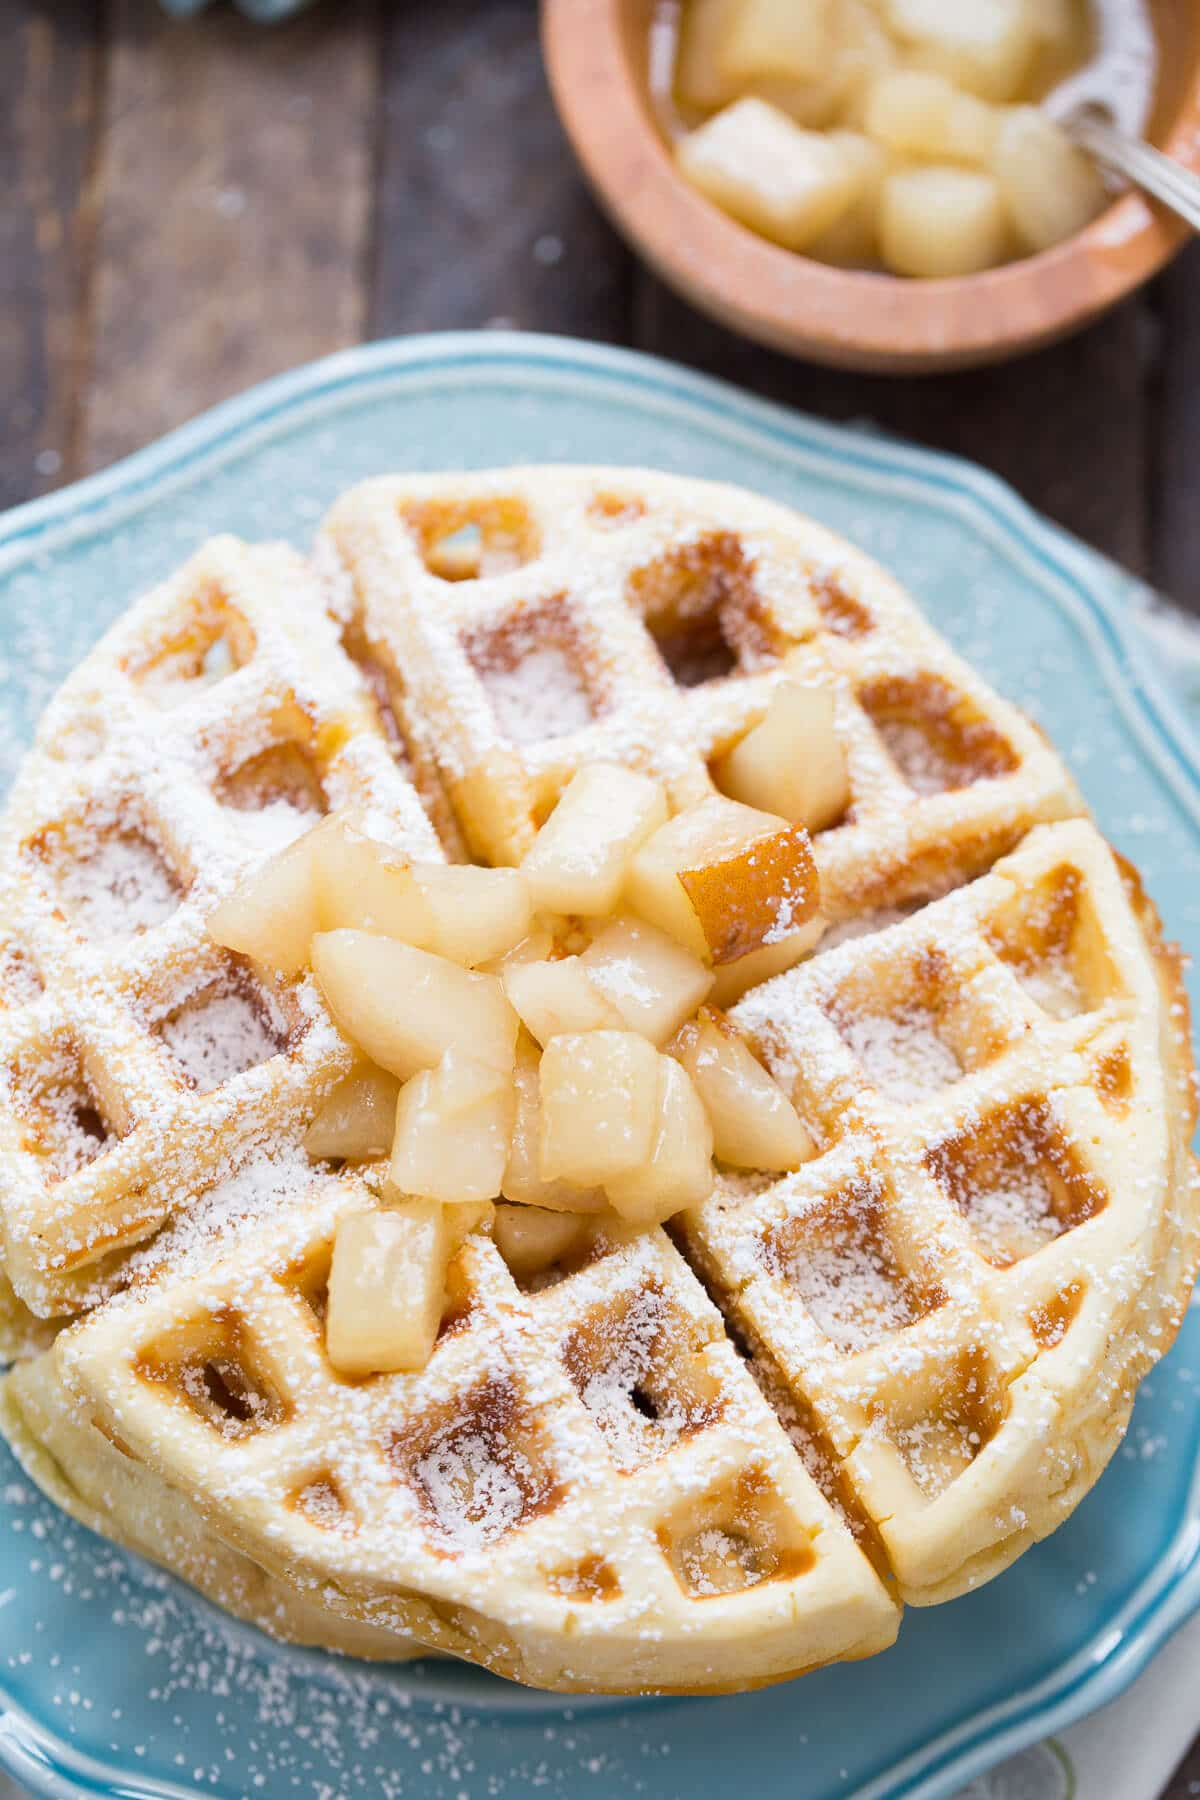 Homemade waffles are flavored with browned butter and are topped with tender spiced pears!